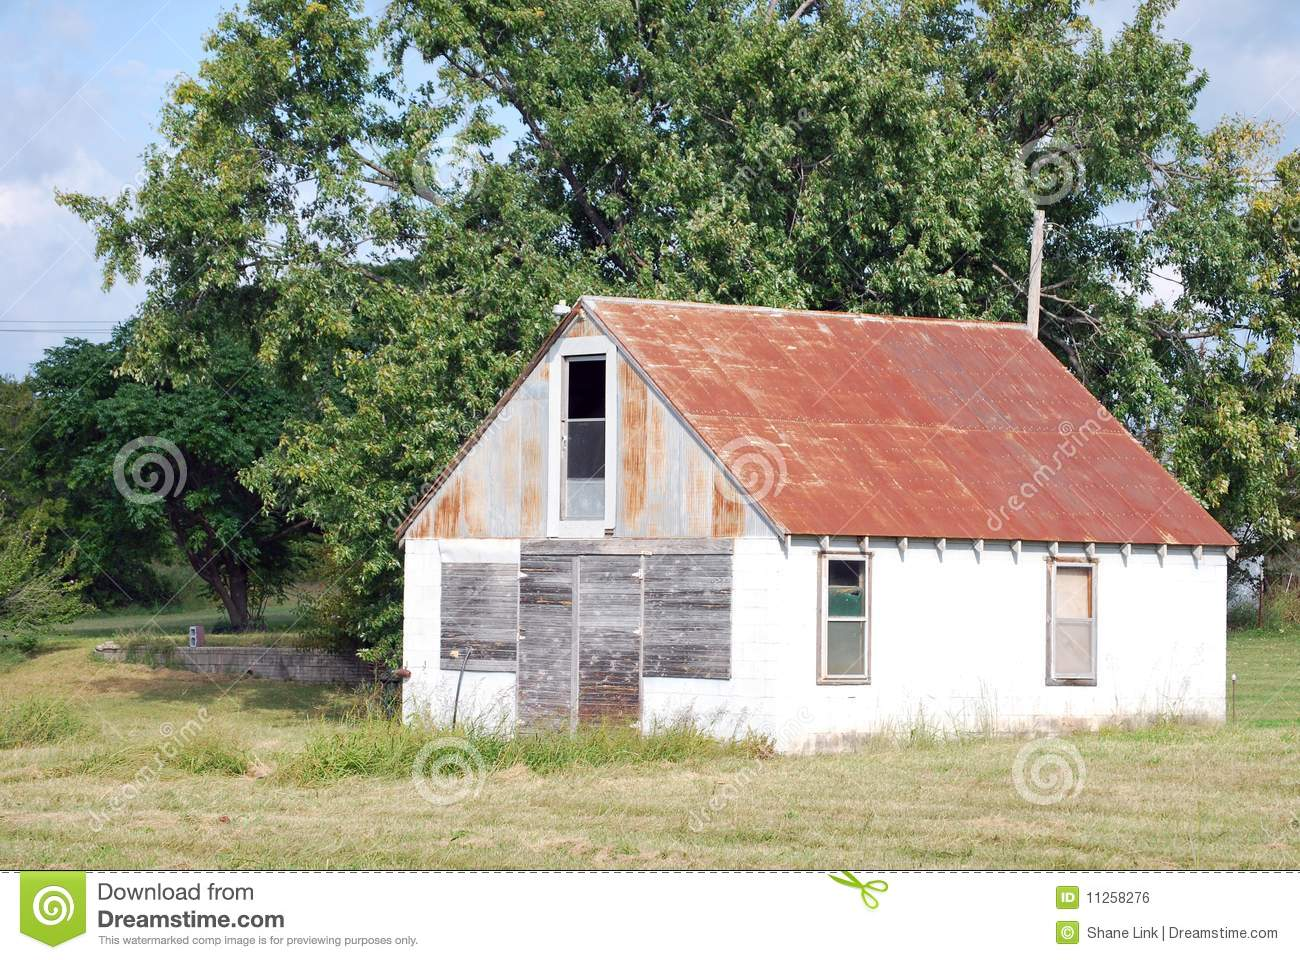 Building With Rusted Metal Roof Stock Photo Image 11258276